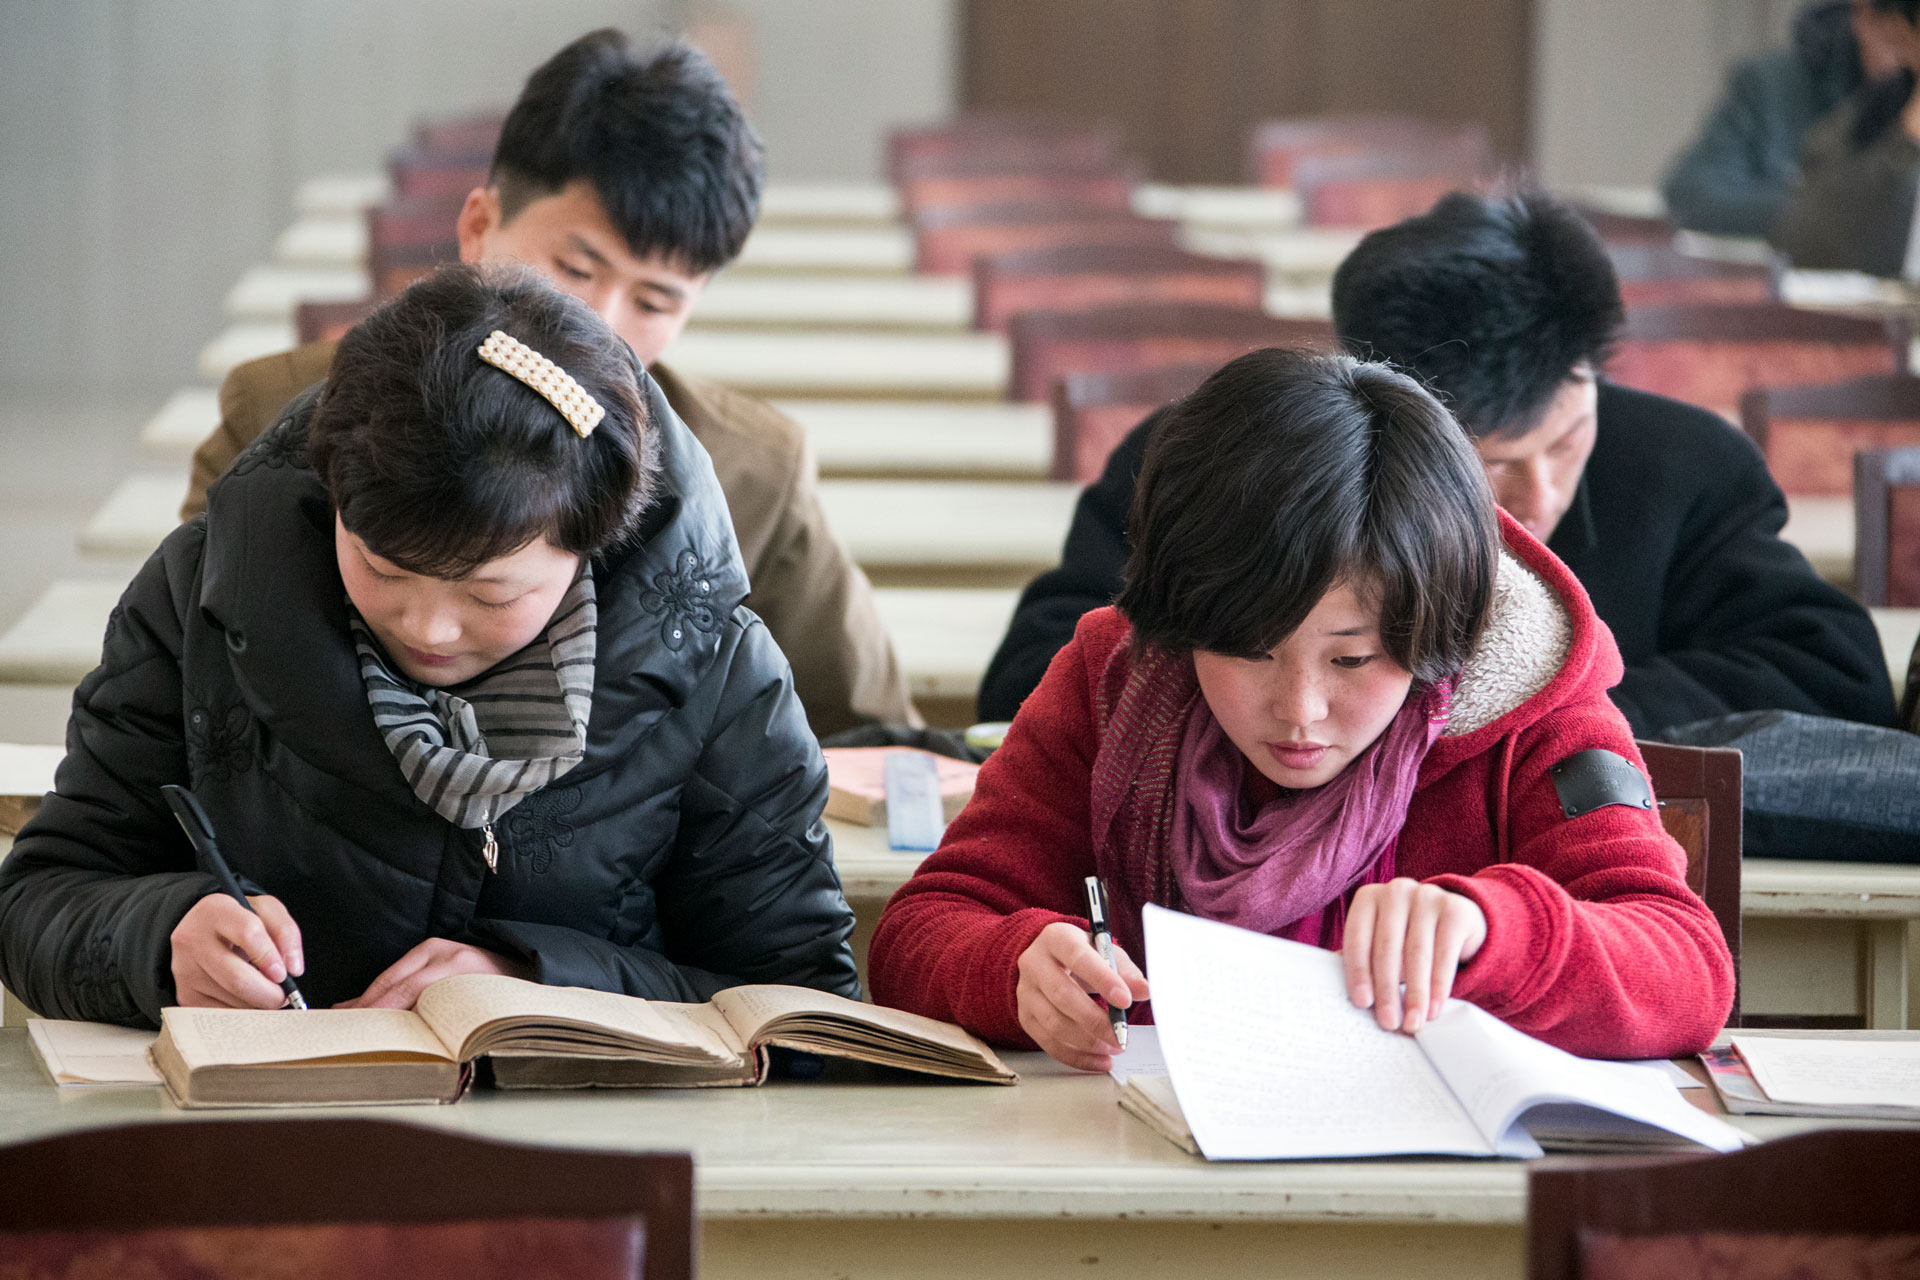 pyongyang-students-studying.jpg